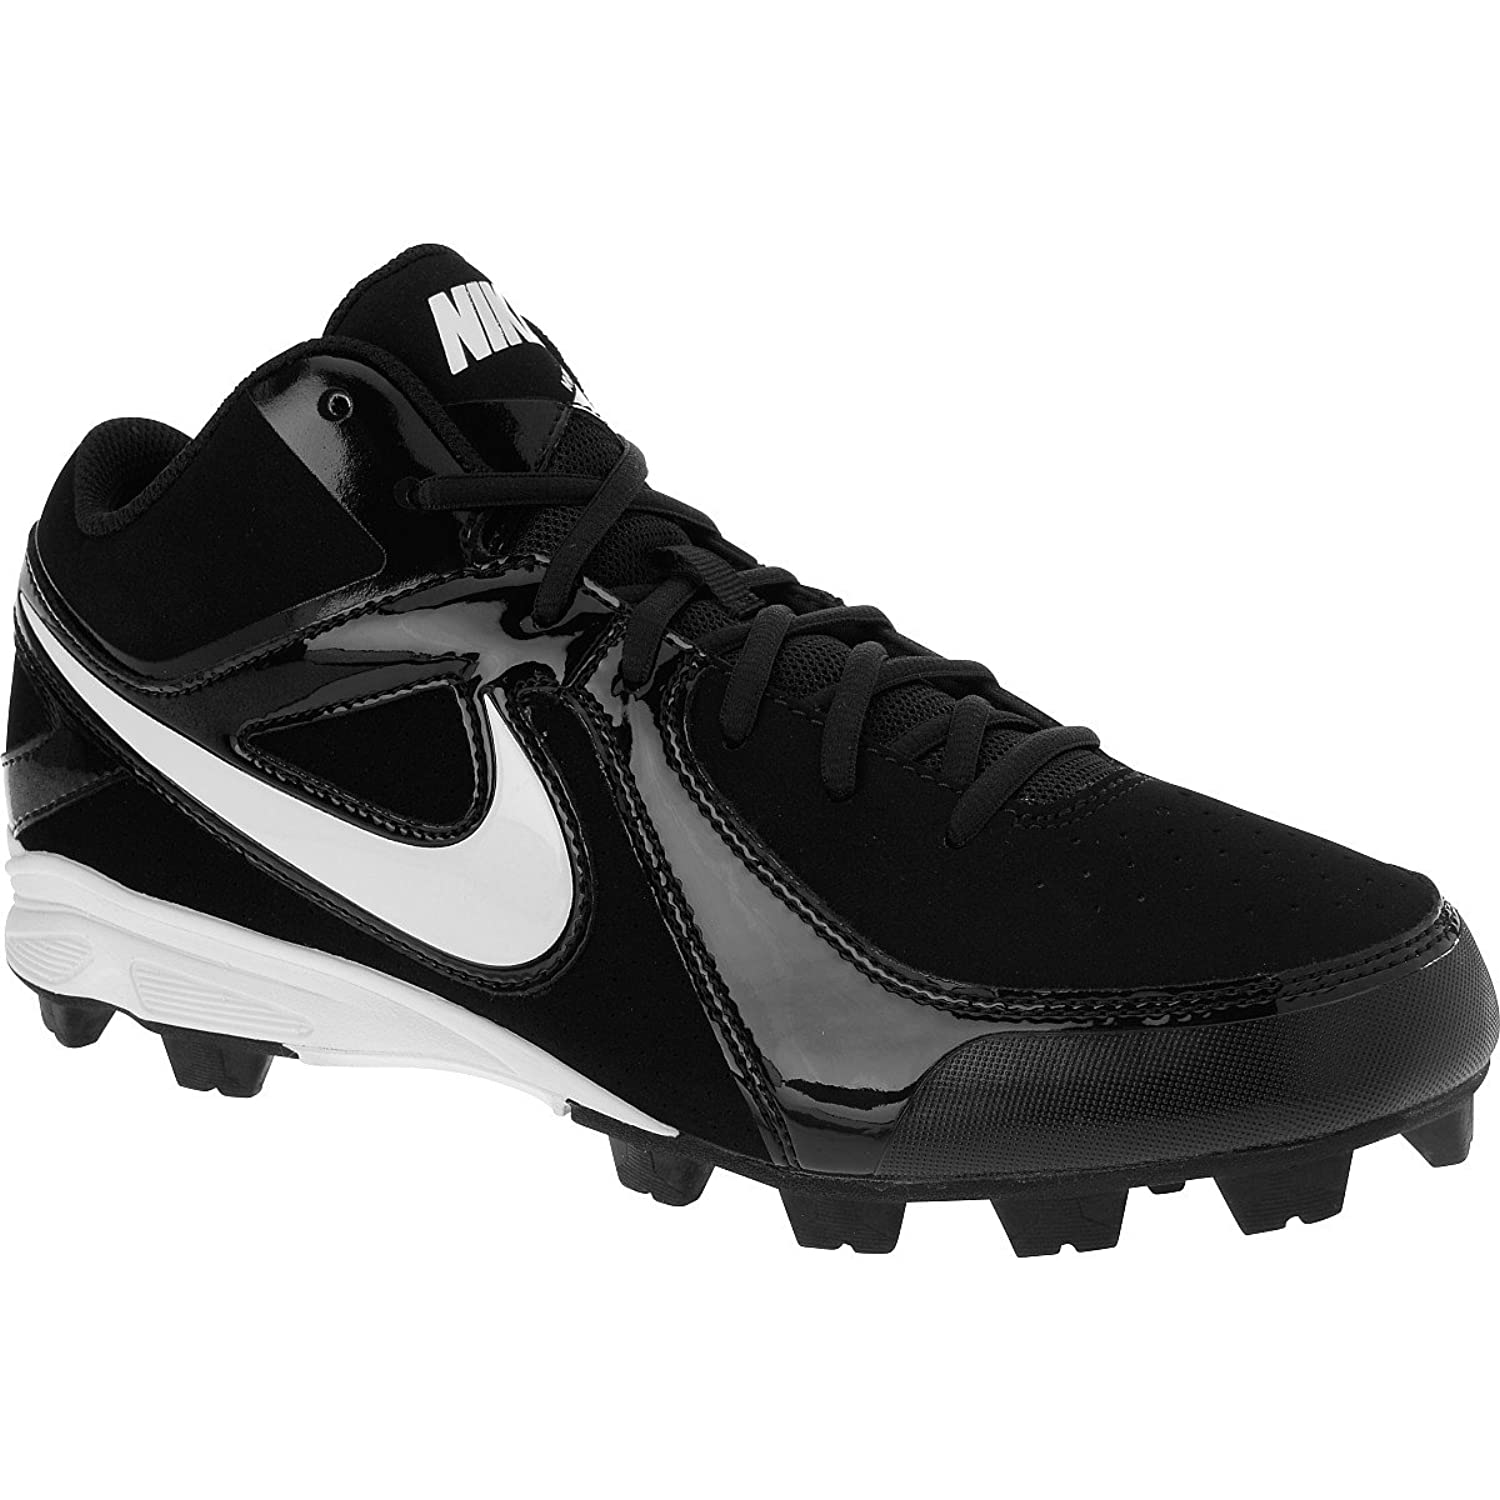 Men's Nike MVP Keystone 3/4 Molded Baseball Cleat Black/White Size 8